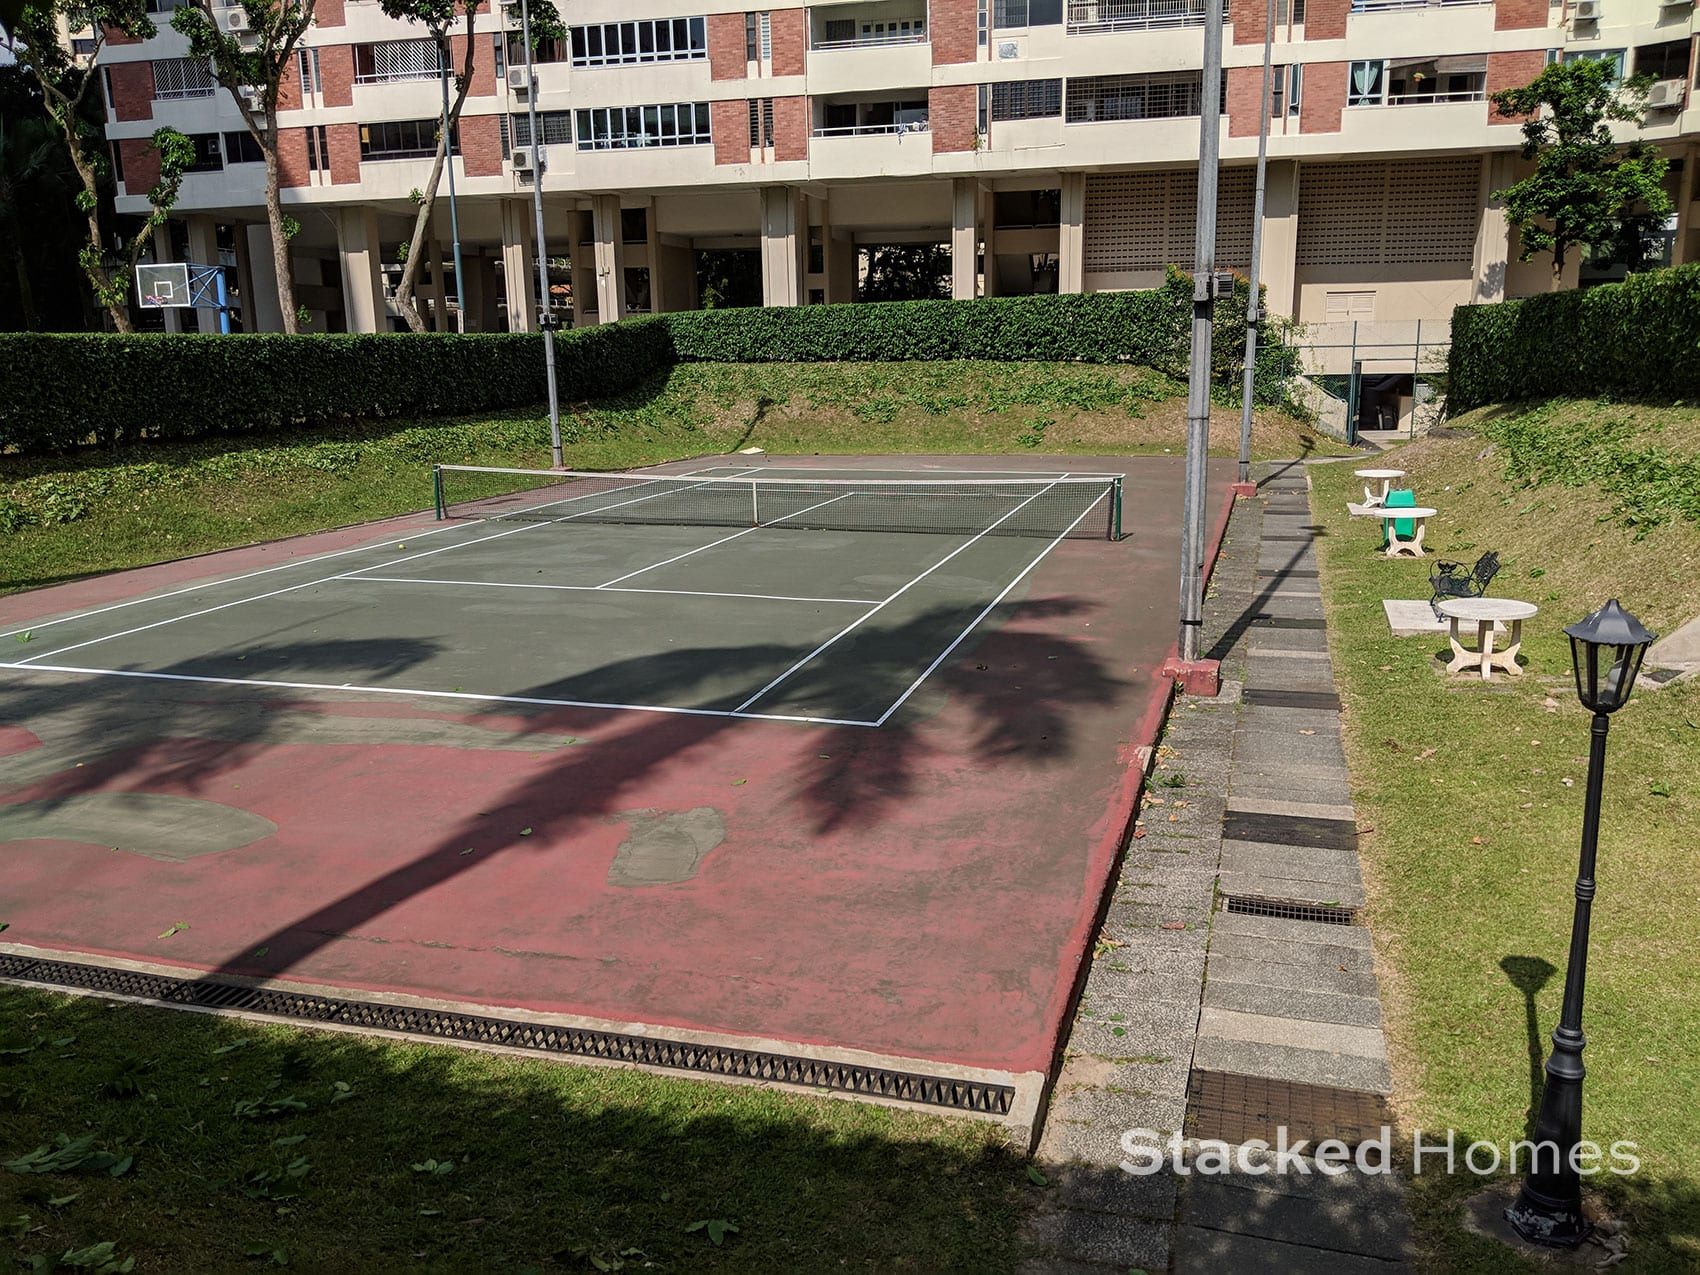 pandan valley tennis court